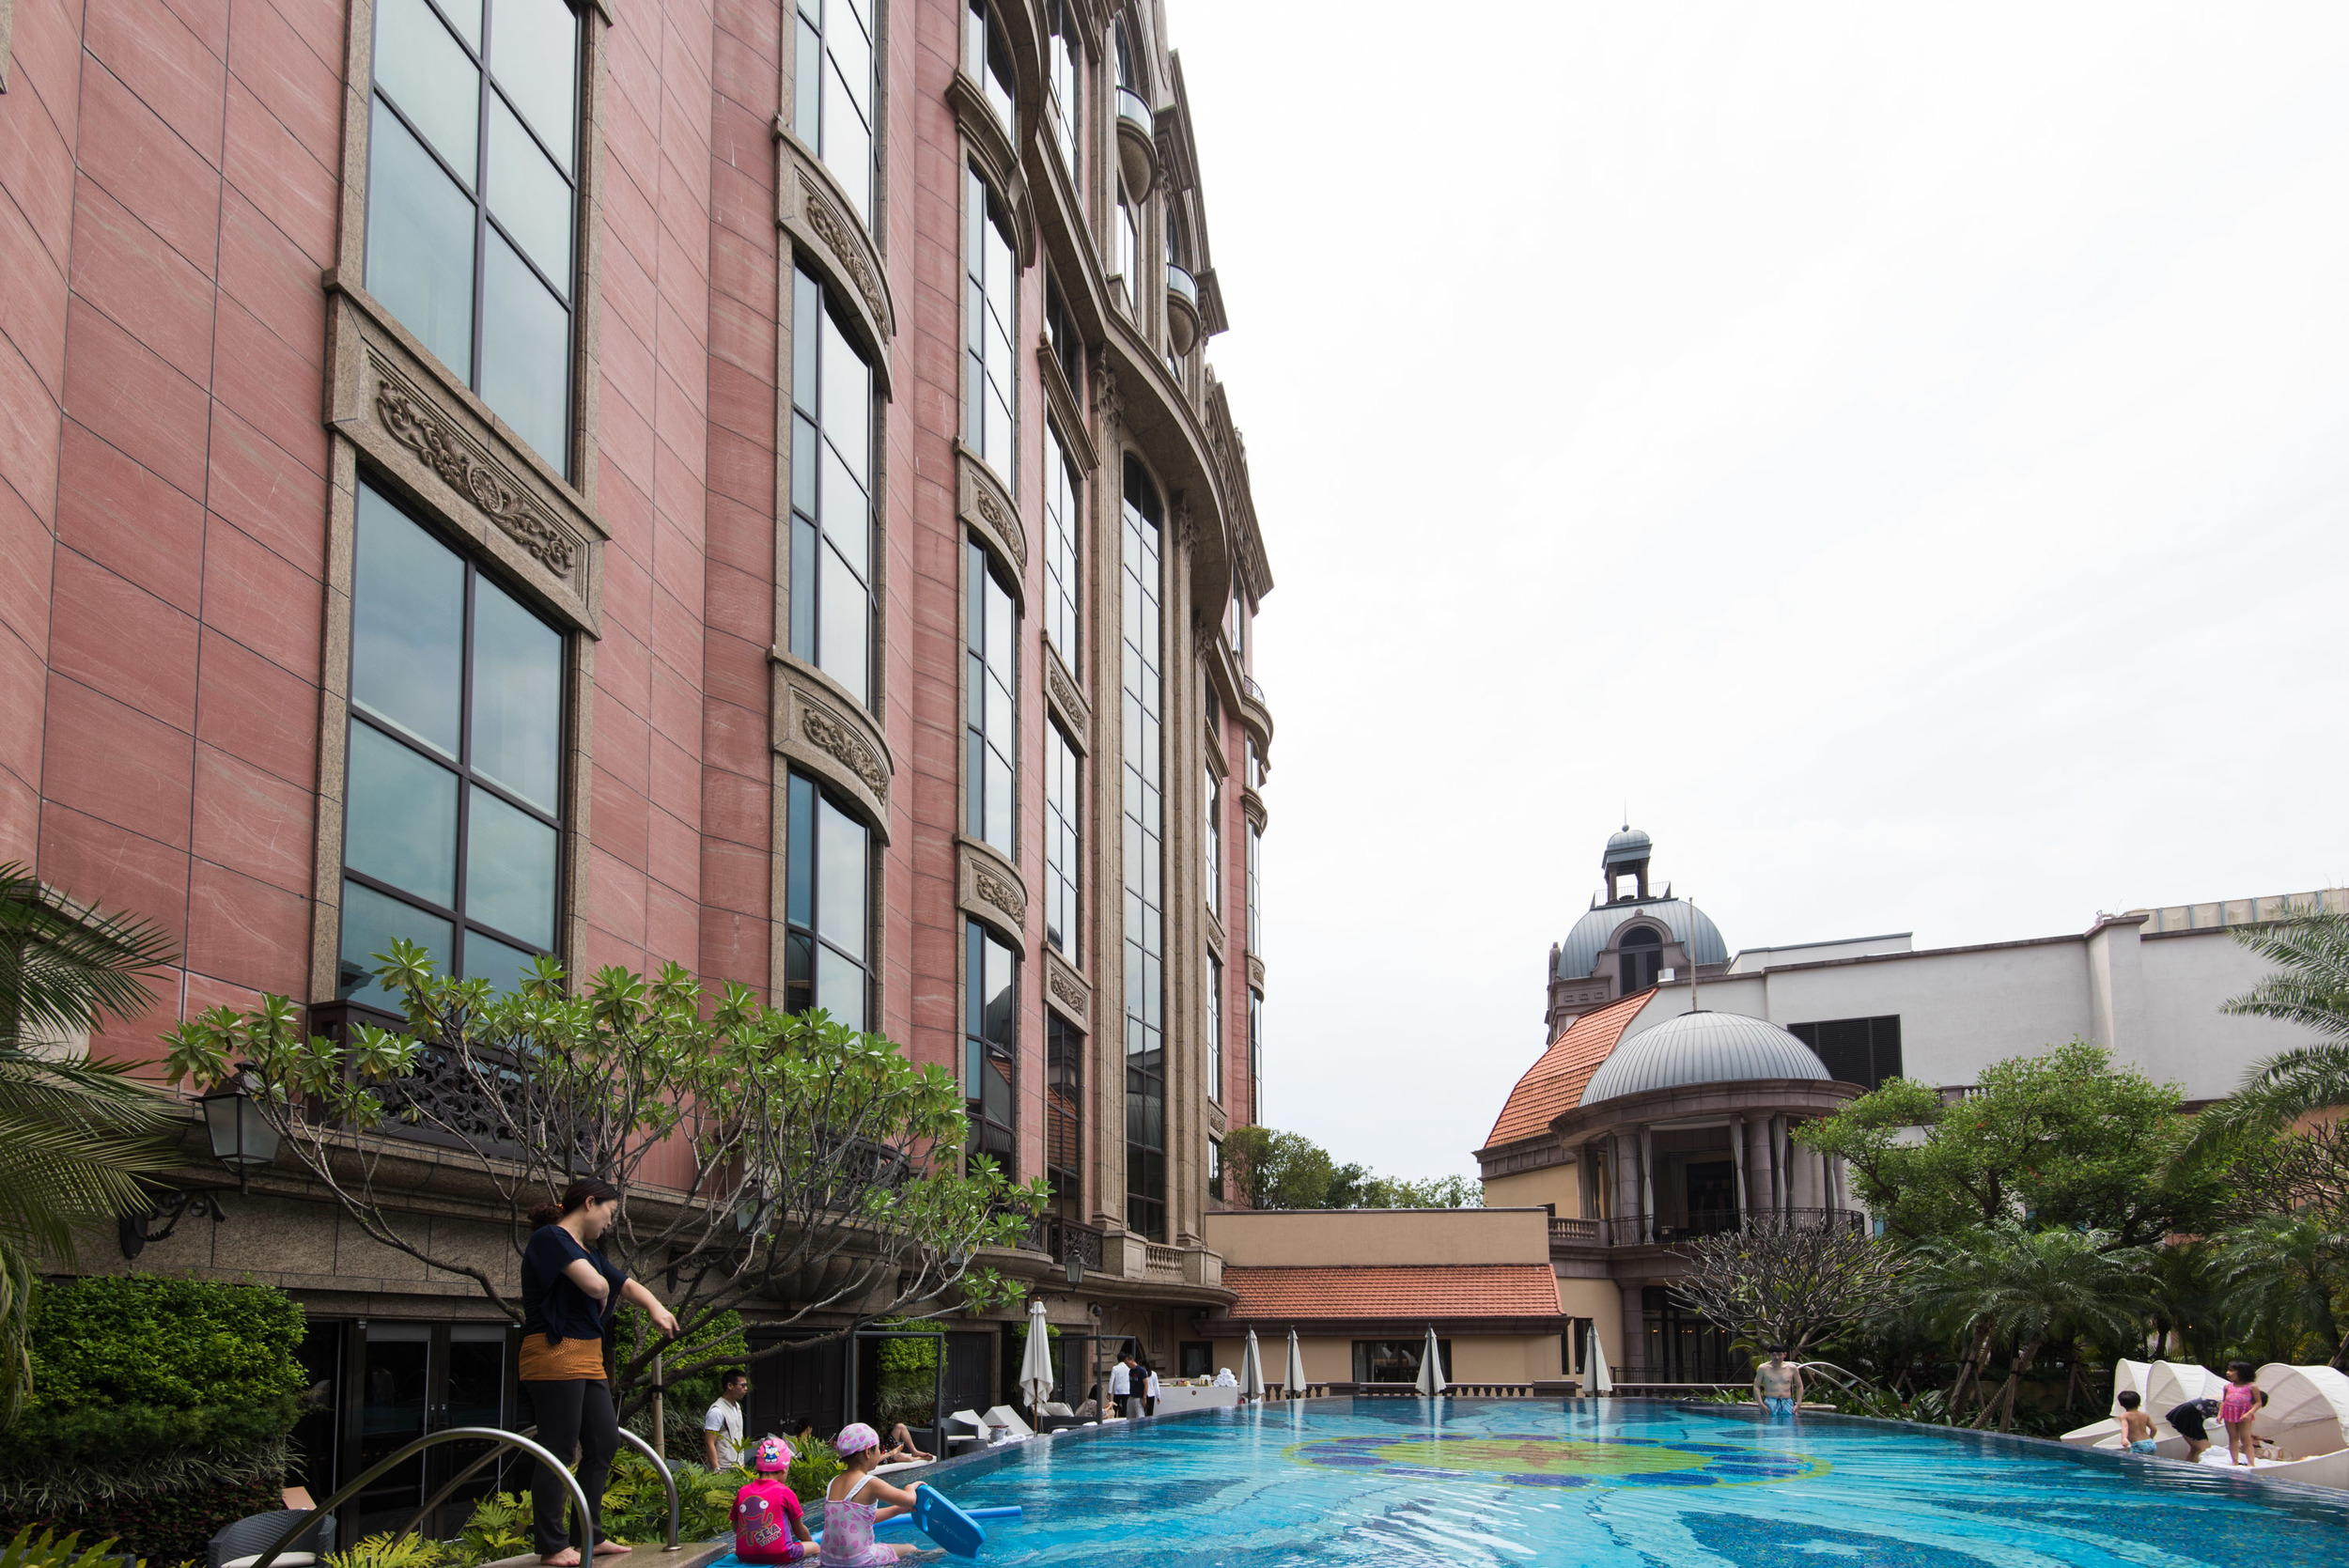 Outdoor Swimming Pool of the Mandarin Oriental, Taipei